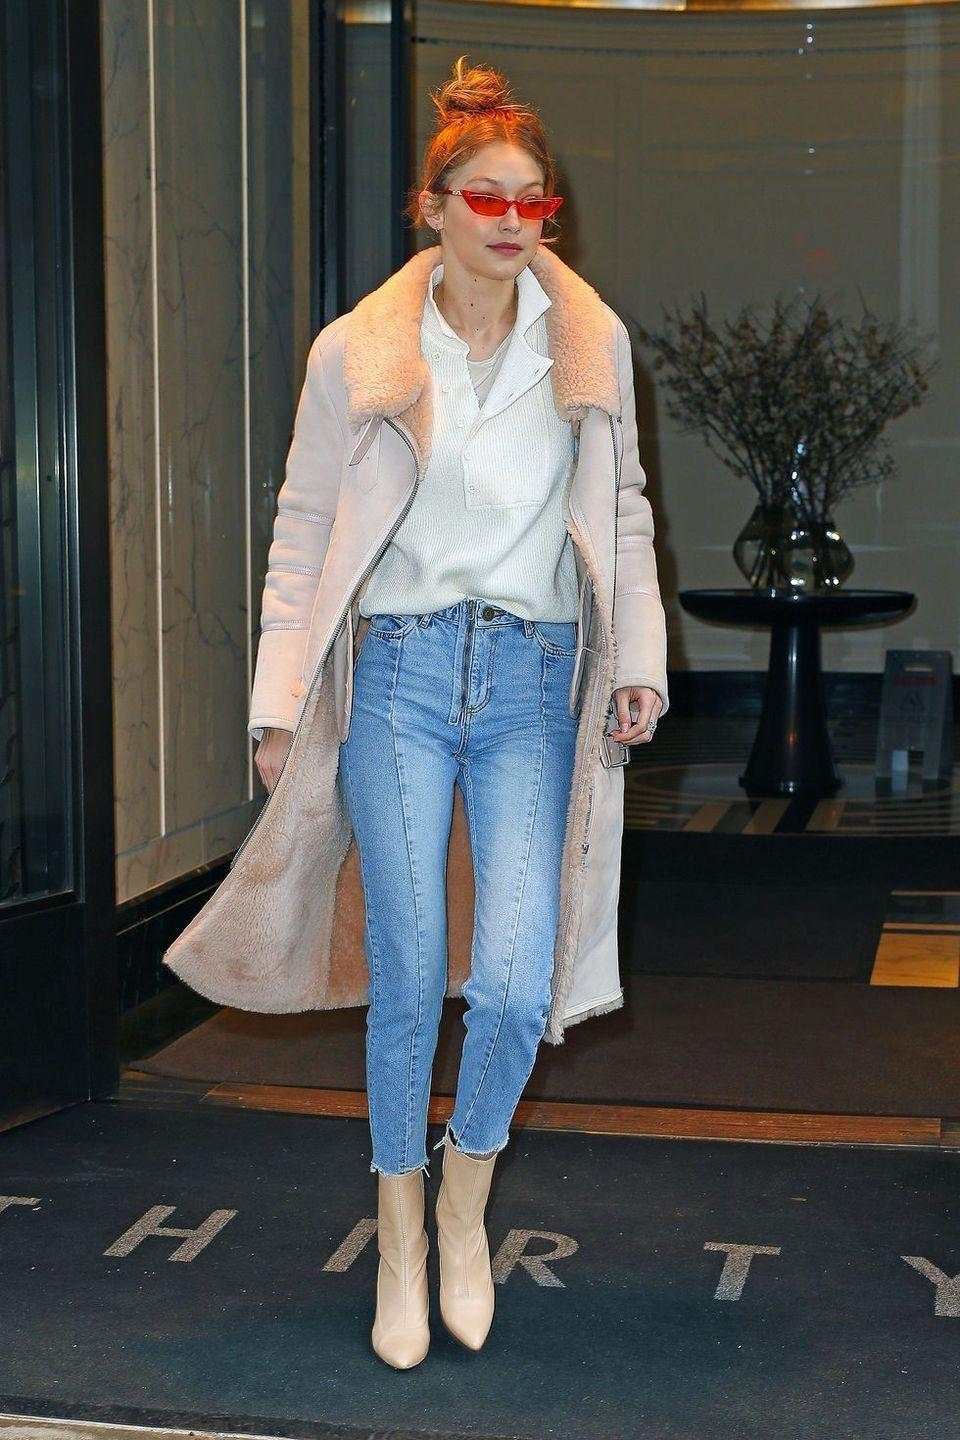 <p>In a fur-lined hushed pink coat by Iro Paris x Kith, white sweater, lightwash Sandro Paris jeans, tan boots, and orange sunglasses while out in NYC.</p>